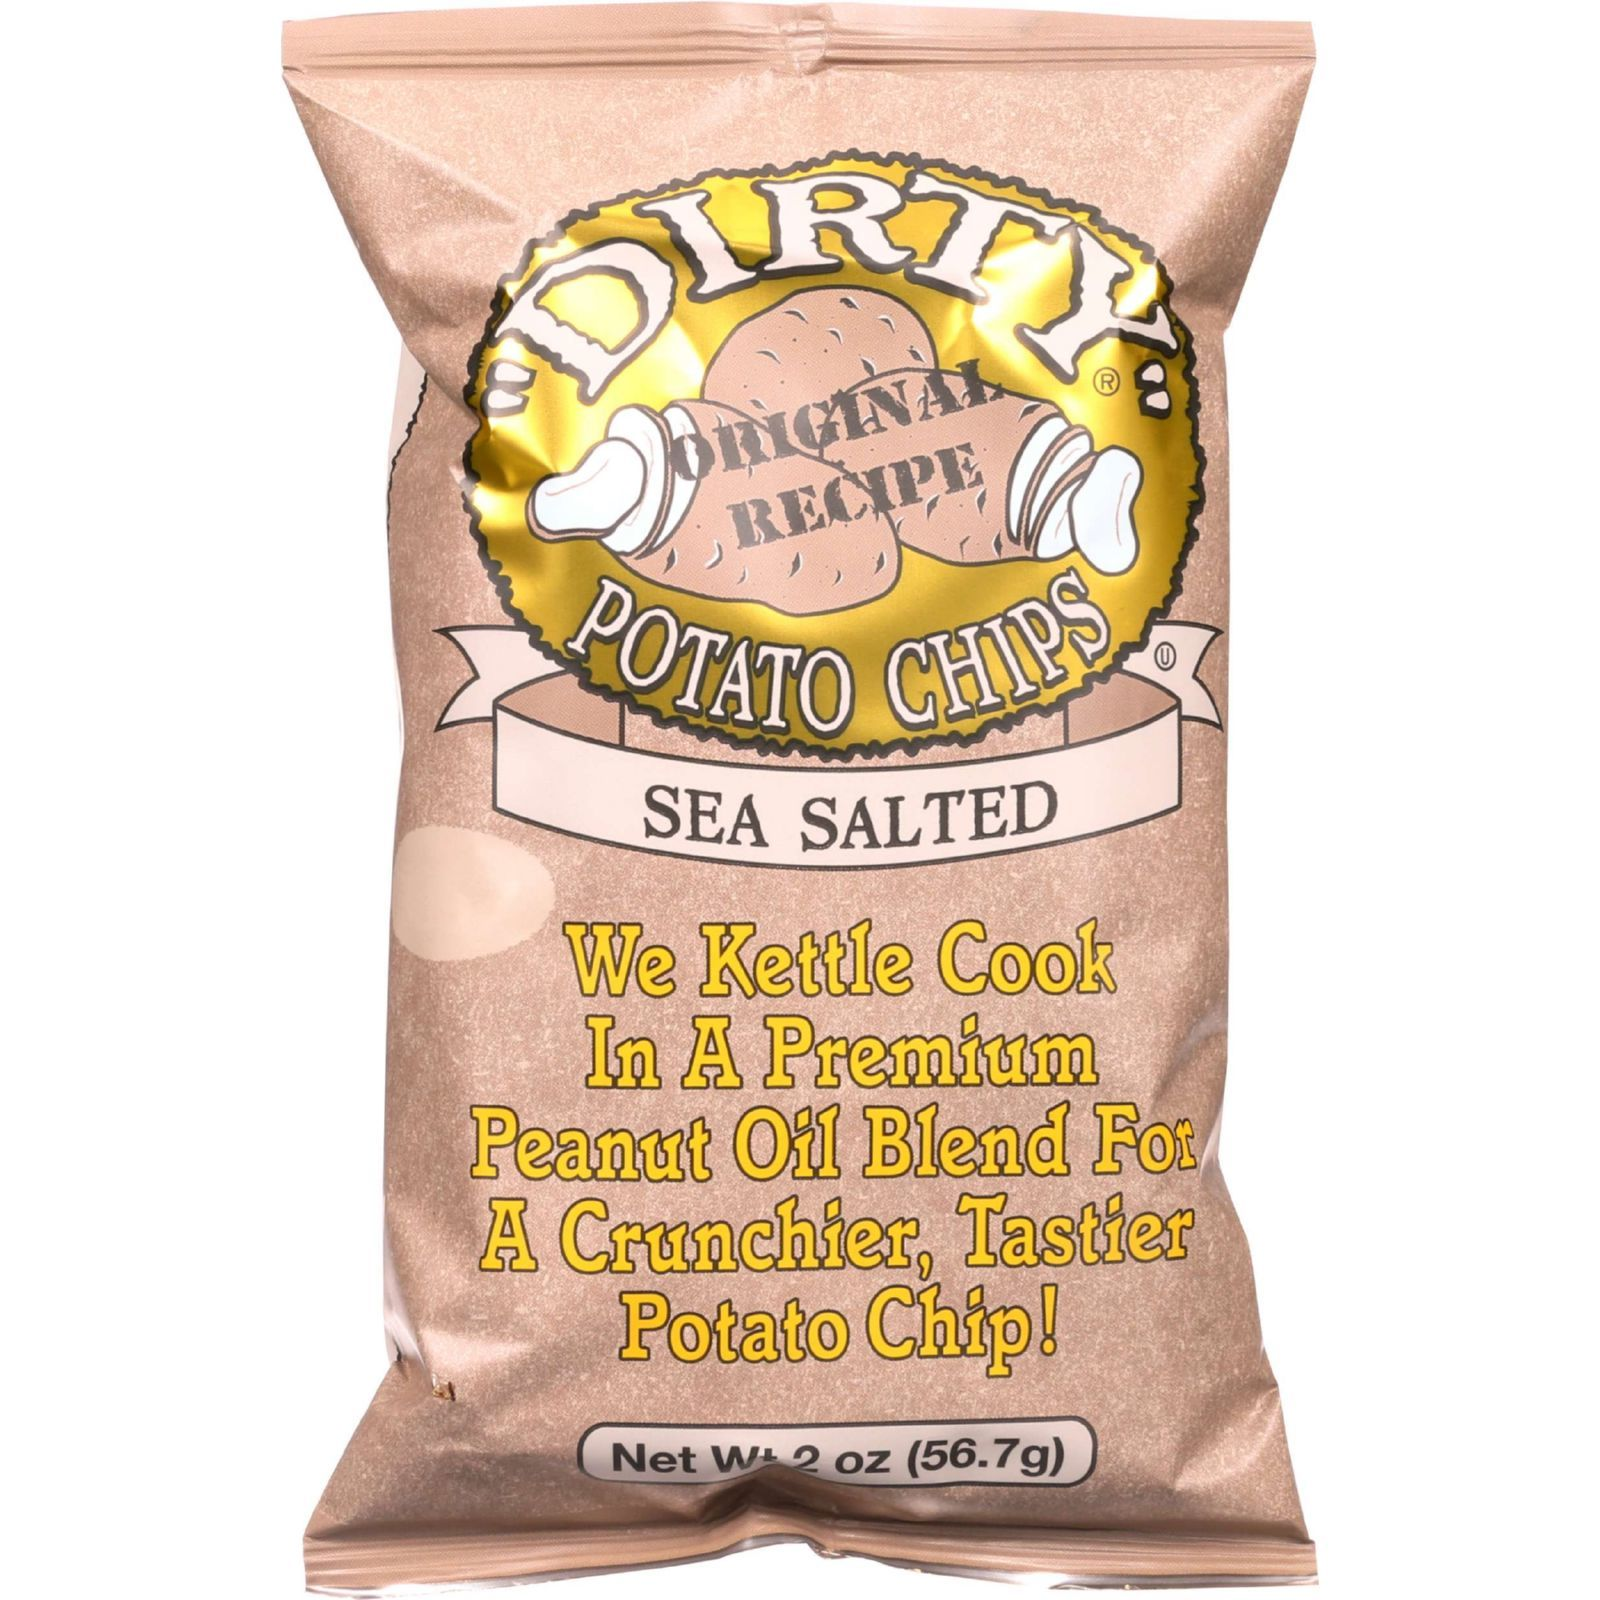 Dirty Chips Potato Chips - Sea Salted - 2 oz - case of 25